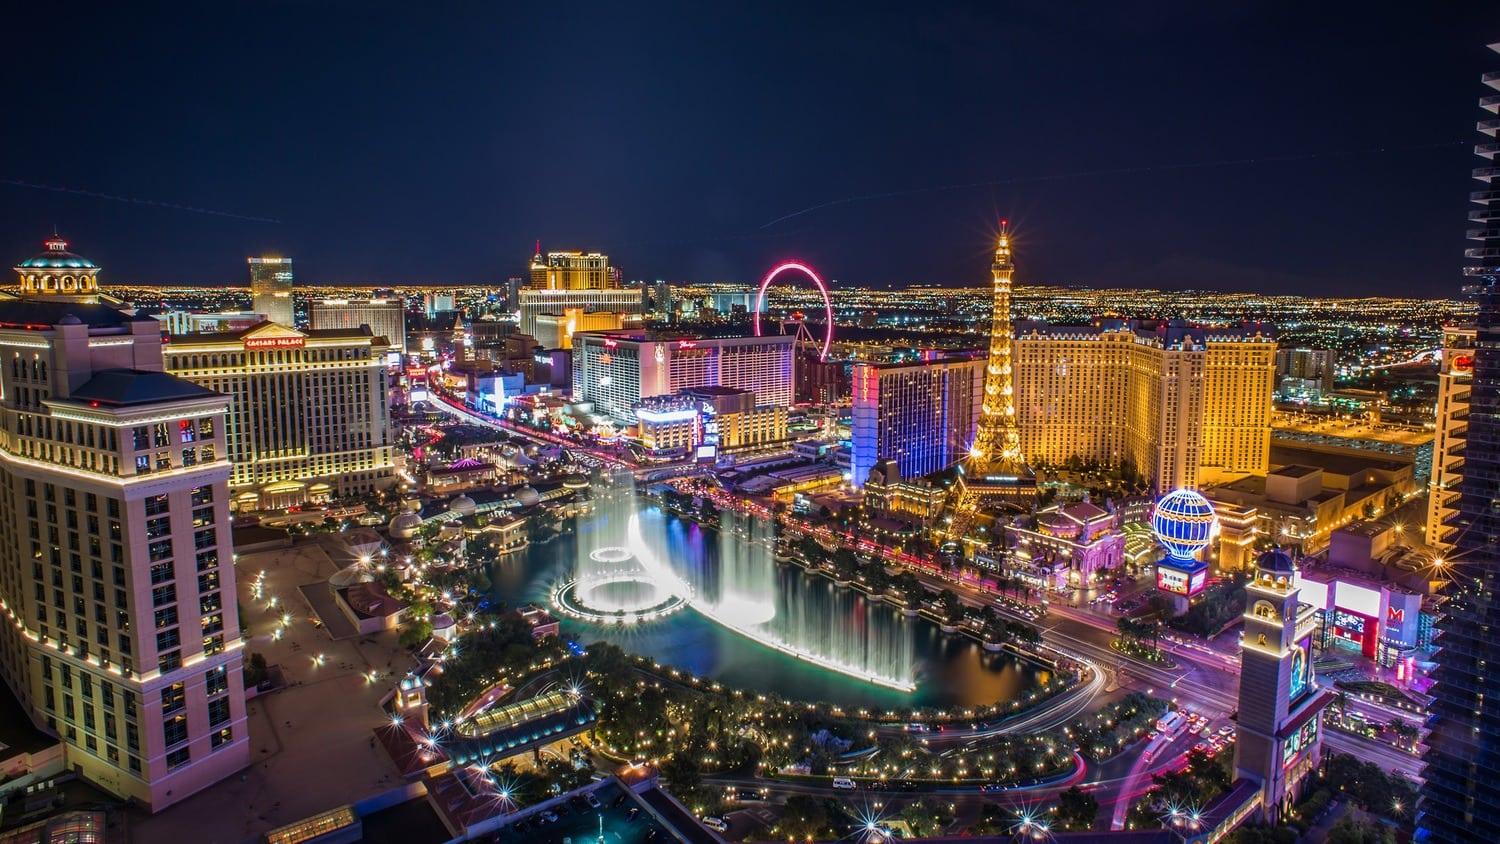 An elevated view of the Las Vegas Strip at night.